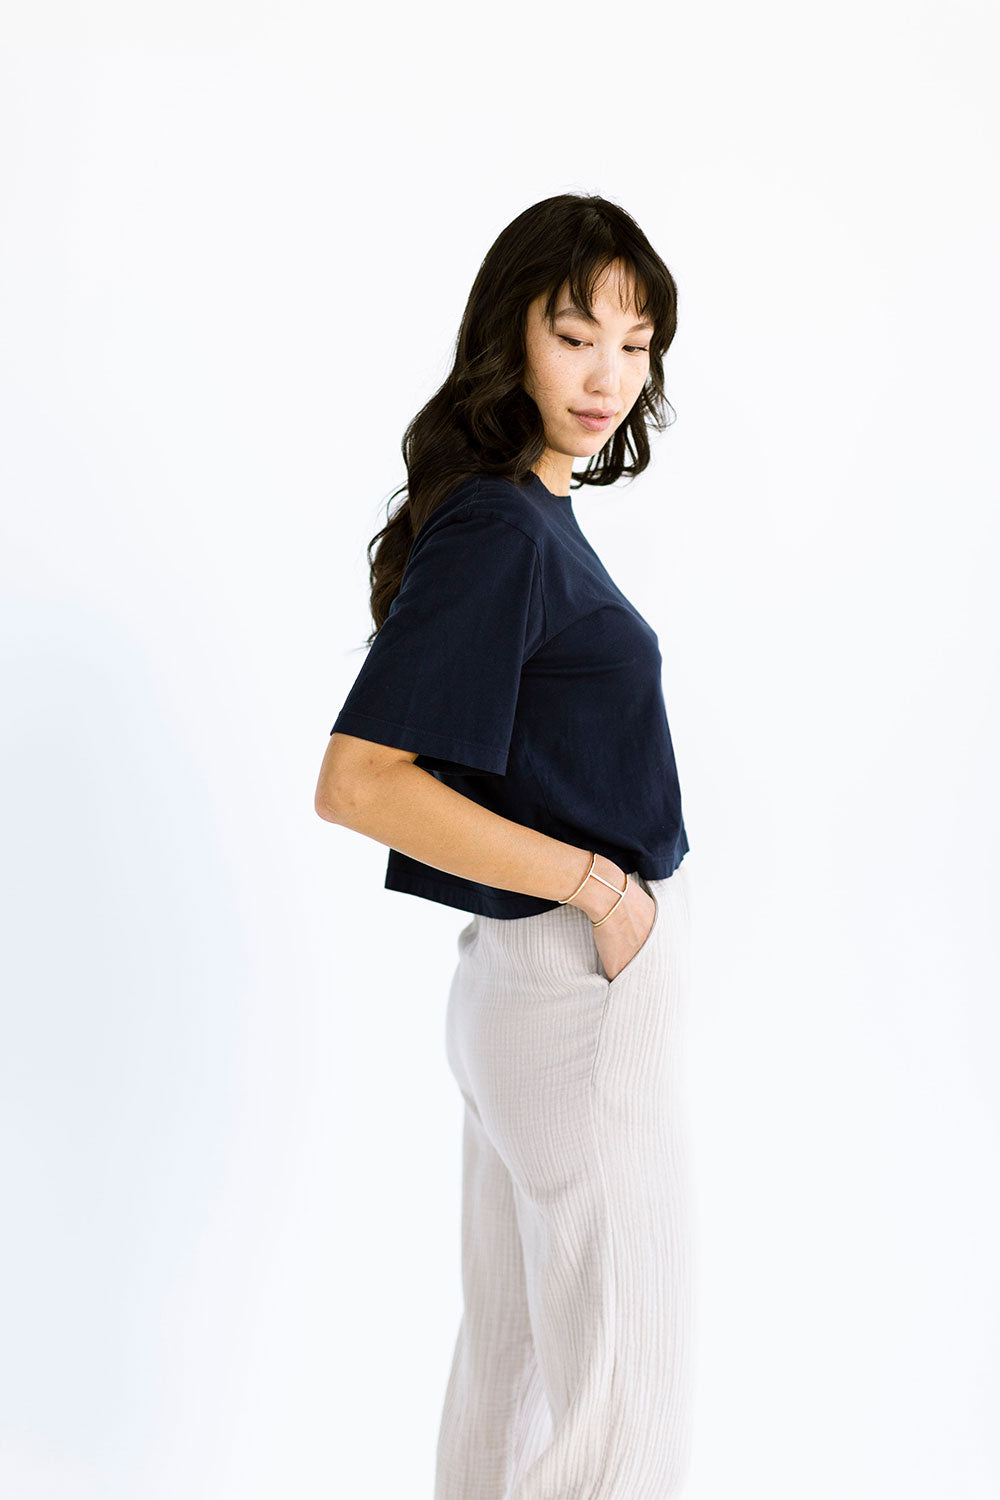 The Boxy Crop Tee in Dark Navy - FINAL SALE, LAST CHANCE